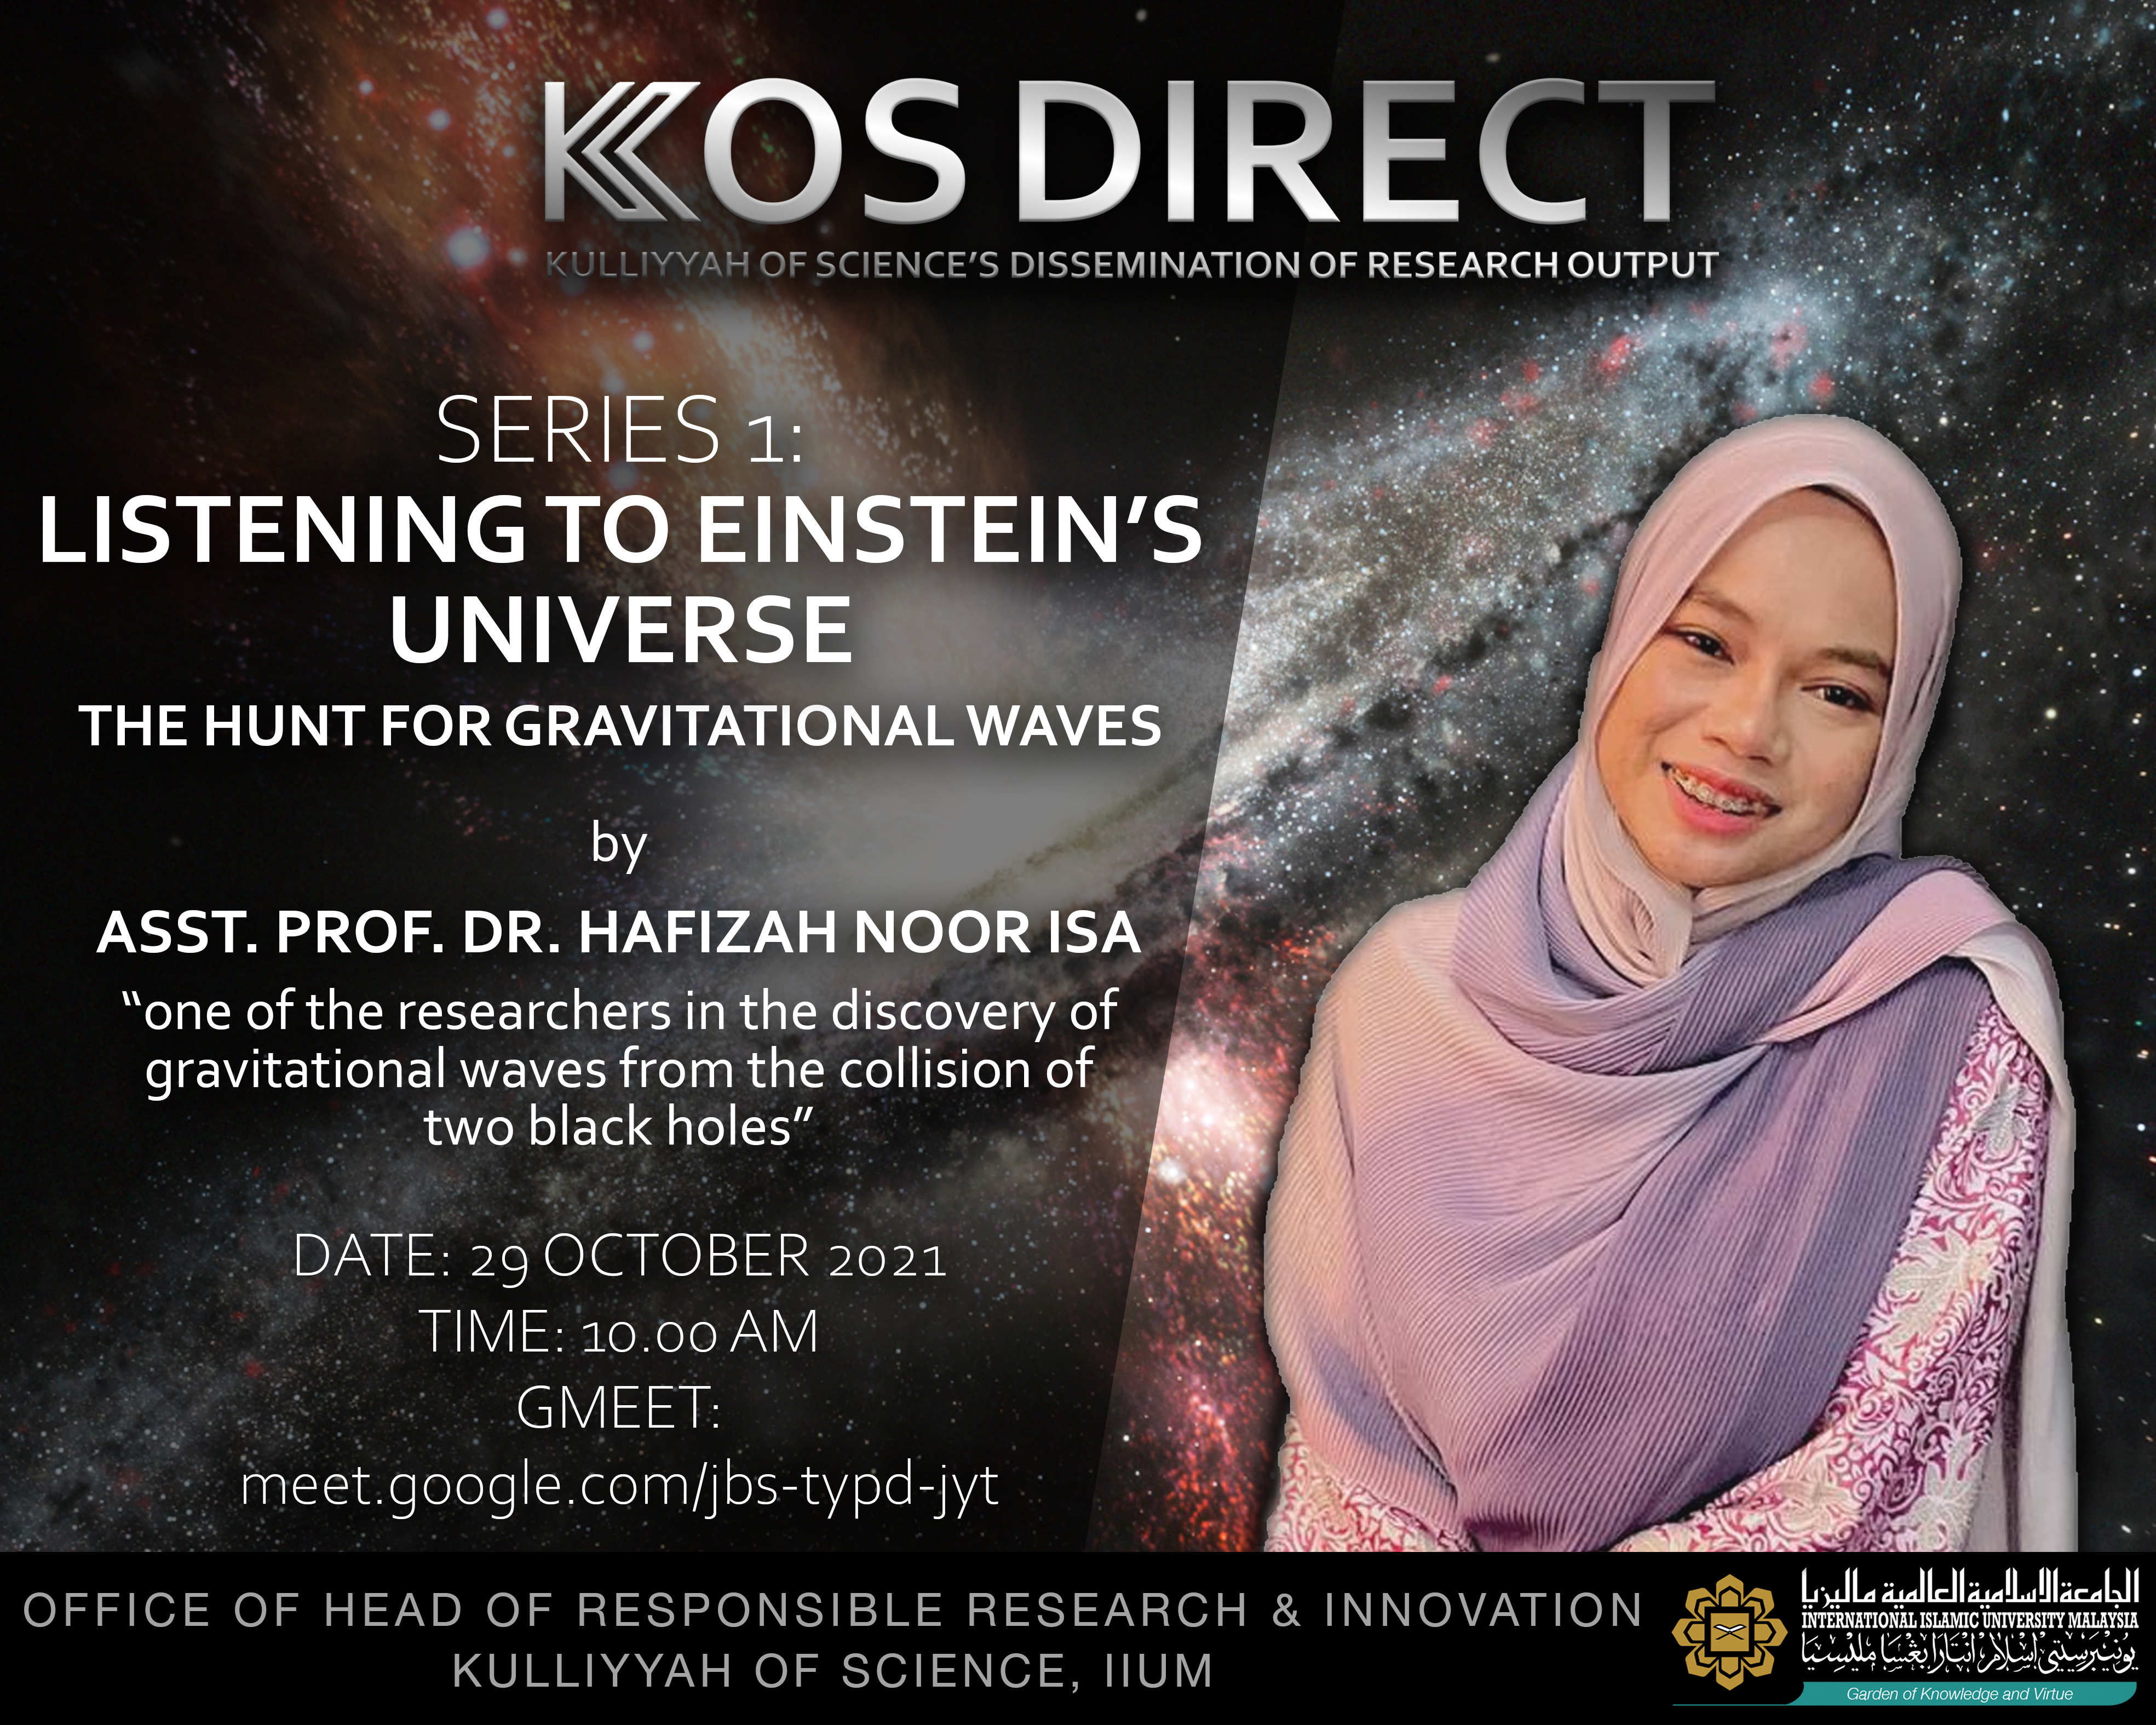 Kulliyyah of Science Dissemination of Research Output (KOS DIRECT) Series 1